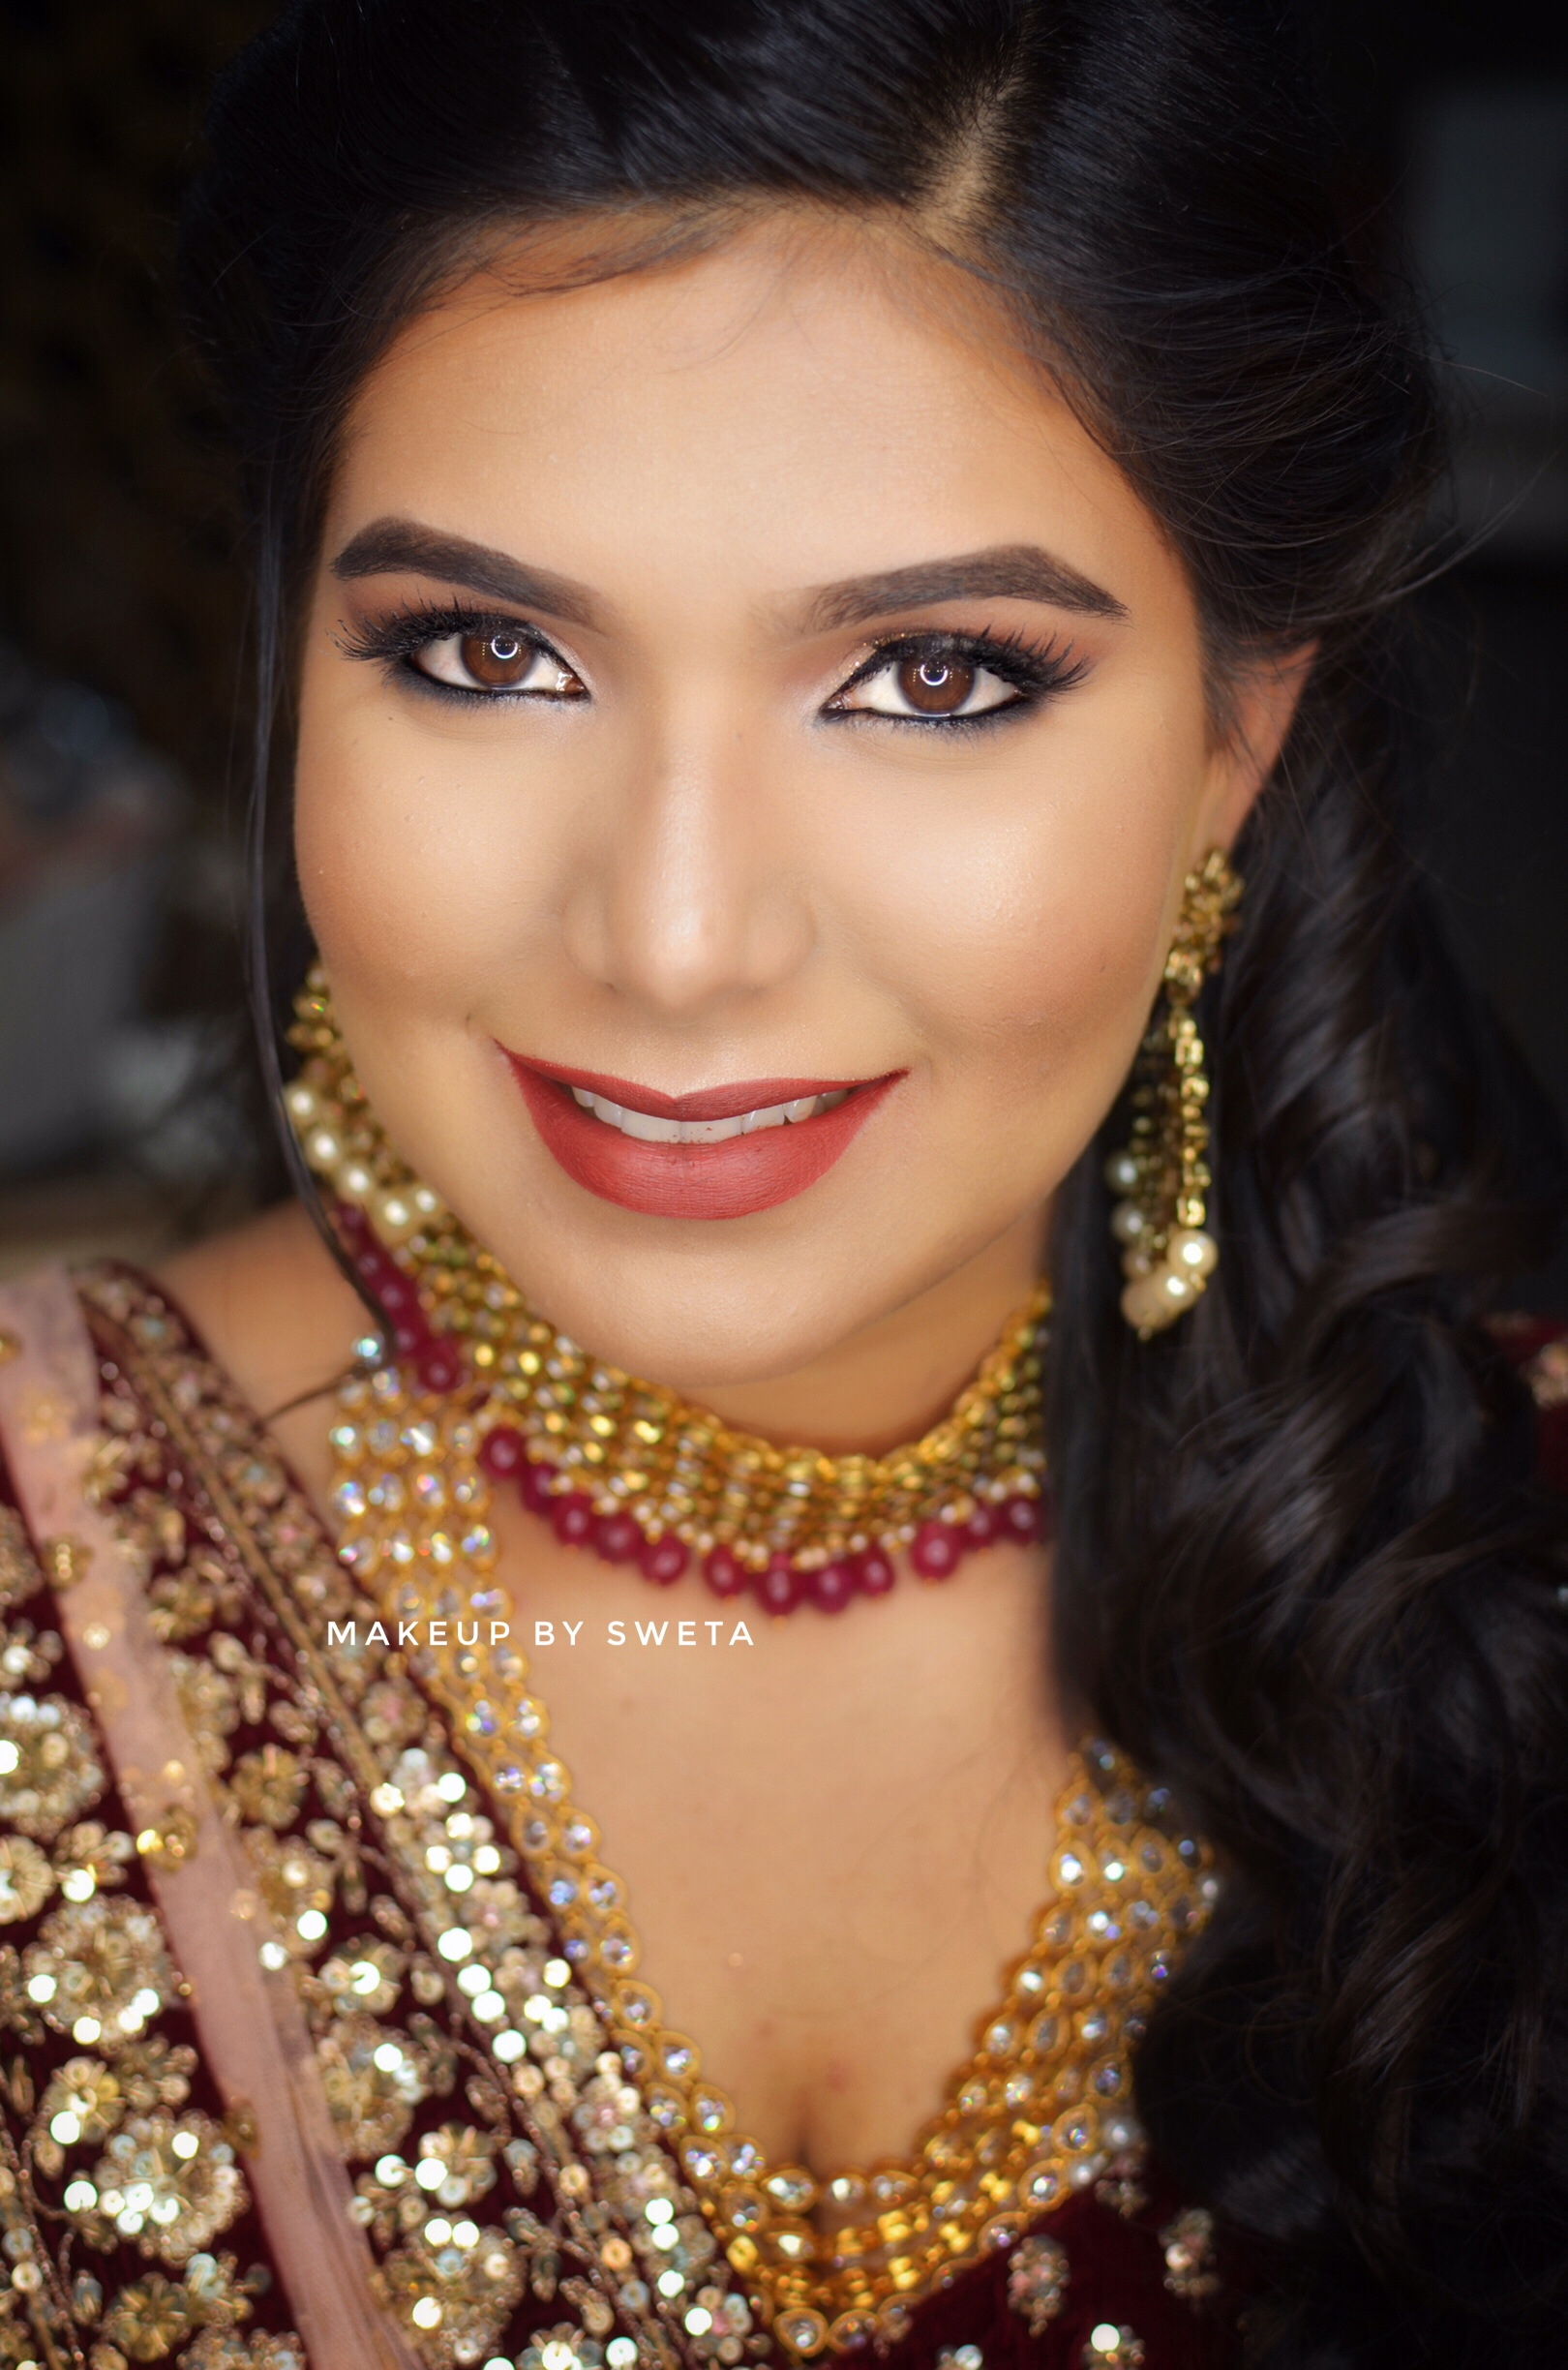 Makeup by Sweta |  Makeup Artist in Bangalore